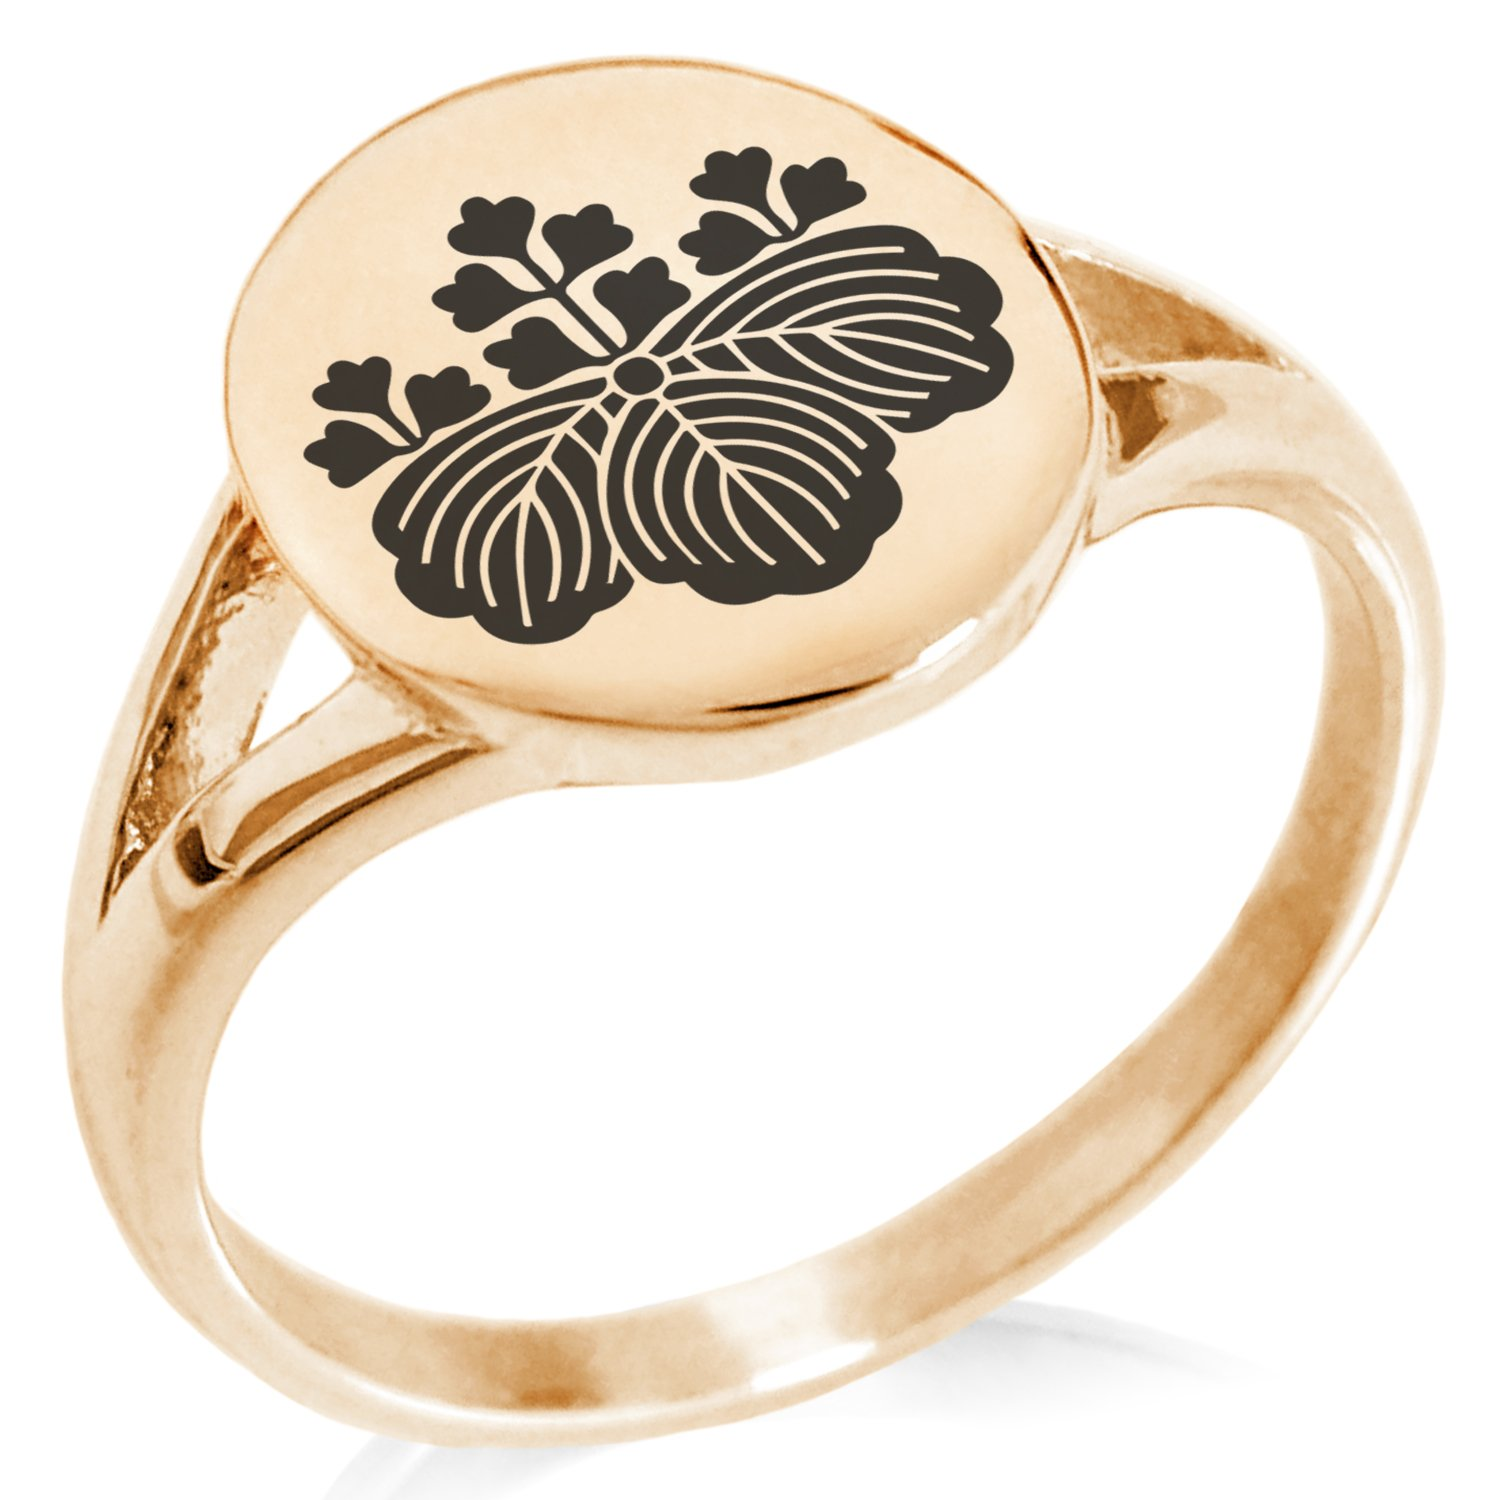 Rose Gold Plated Stainless Steel Toyotomi Samurai Crest Minimalist Oval Top Polished Statement Ring, Size 6